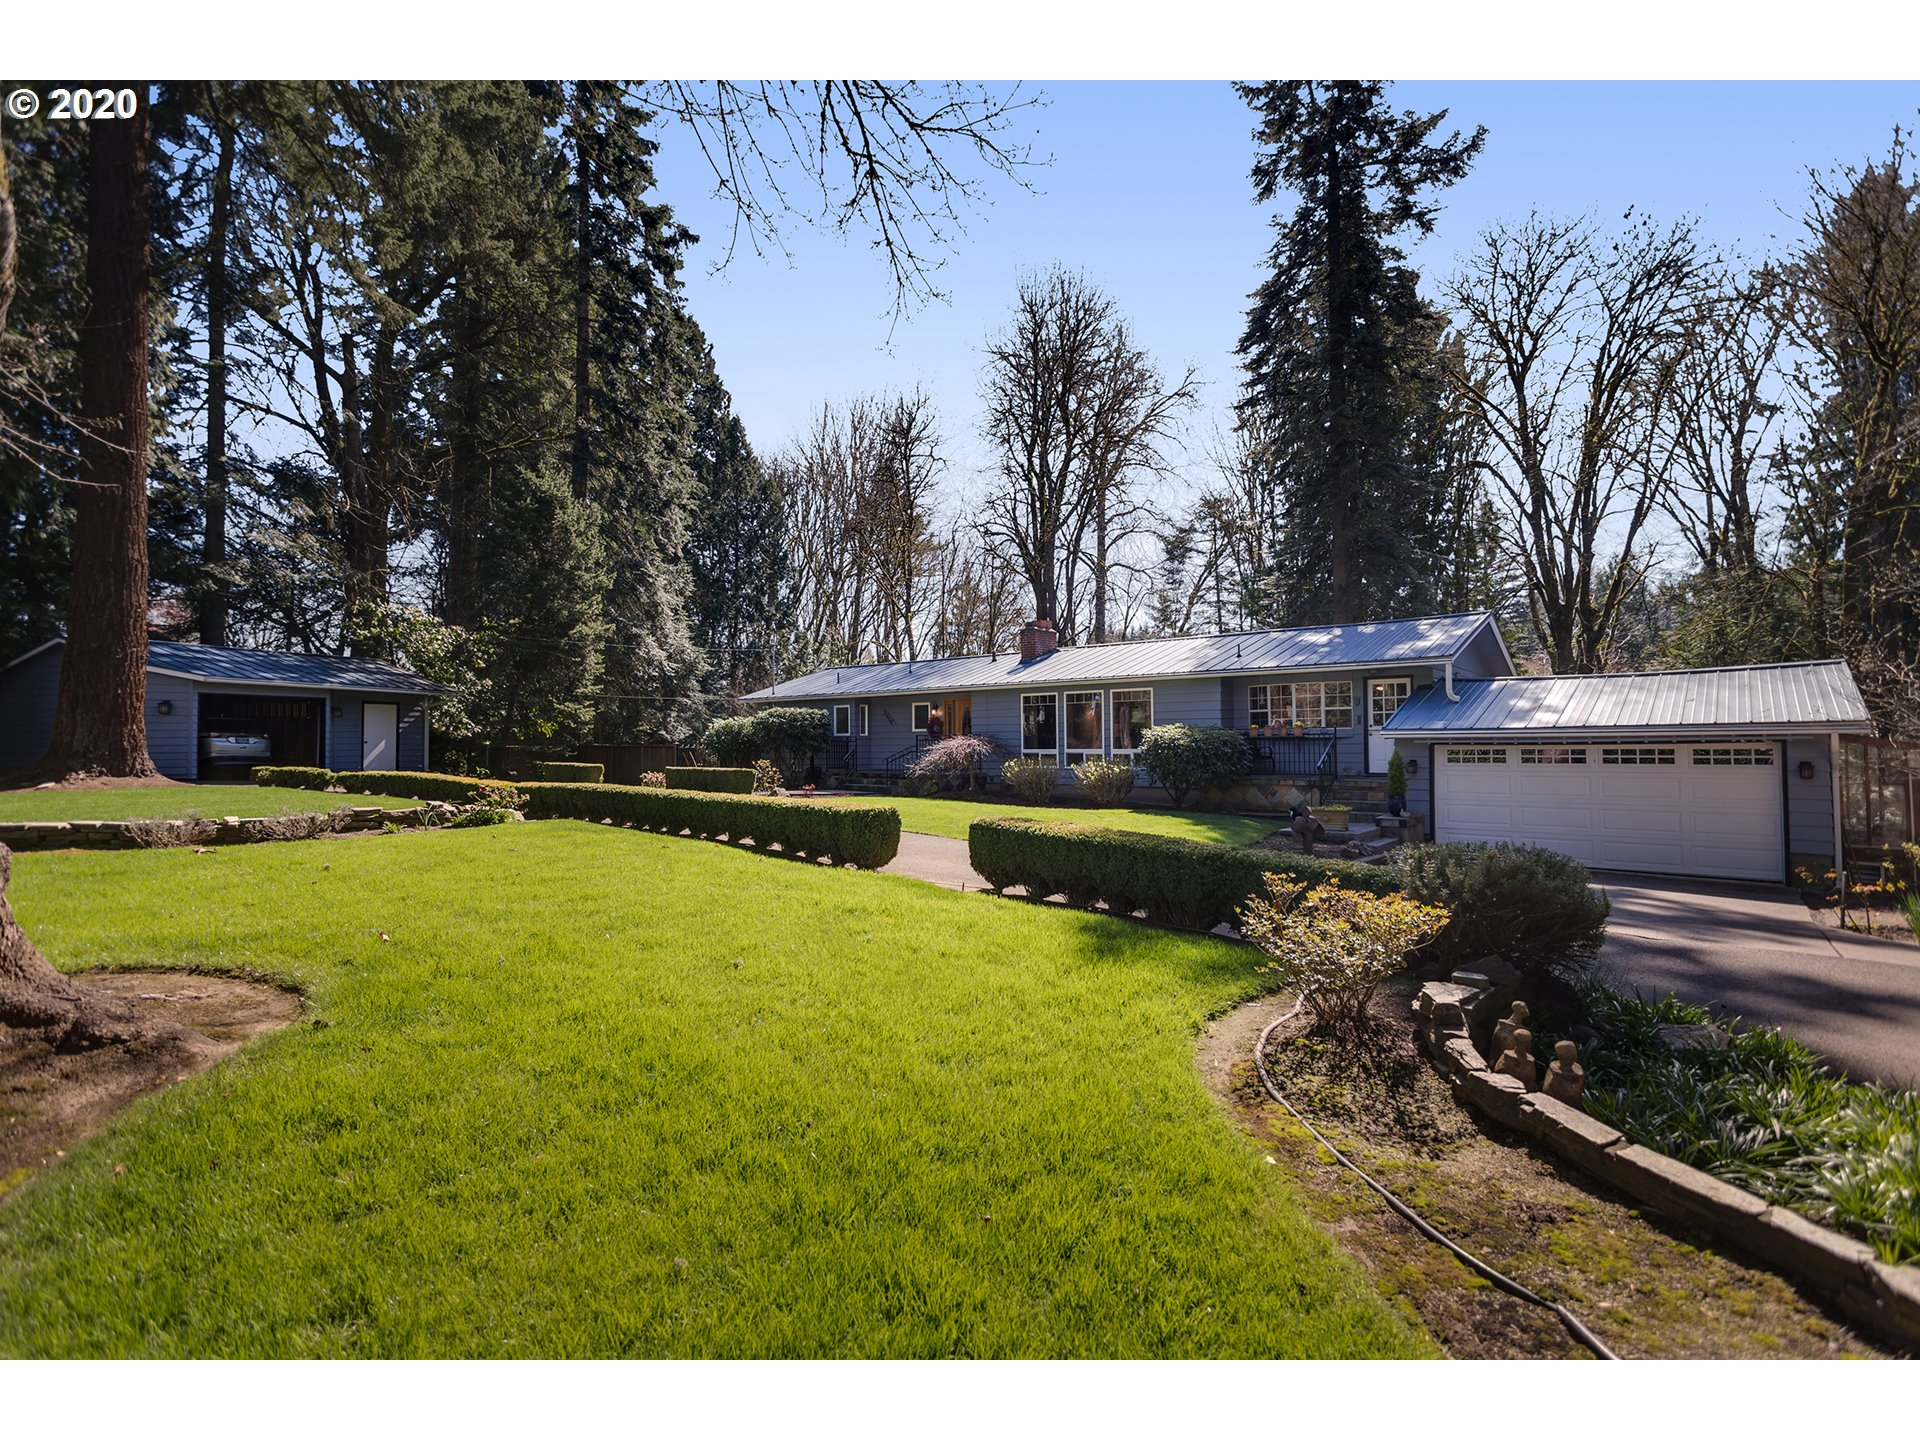 Lovely remodeled mid-century home on .97 acre in desirable West Linn neighborhood. Bright & airy with vaulted ceilings in living room & master suite. Updated eat-in kitchen with cherry cabinets, granite, high-end stainless appliances & cork floor. Living room has fireplace and cherry buffet & bookcases. Large, private entertaining deck backs to property's wooded ravine. Daylight basement has bonus room with fireplace, private guest room with private bath & huge woodshop. Blocks from the river.